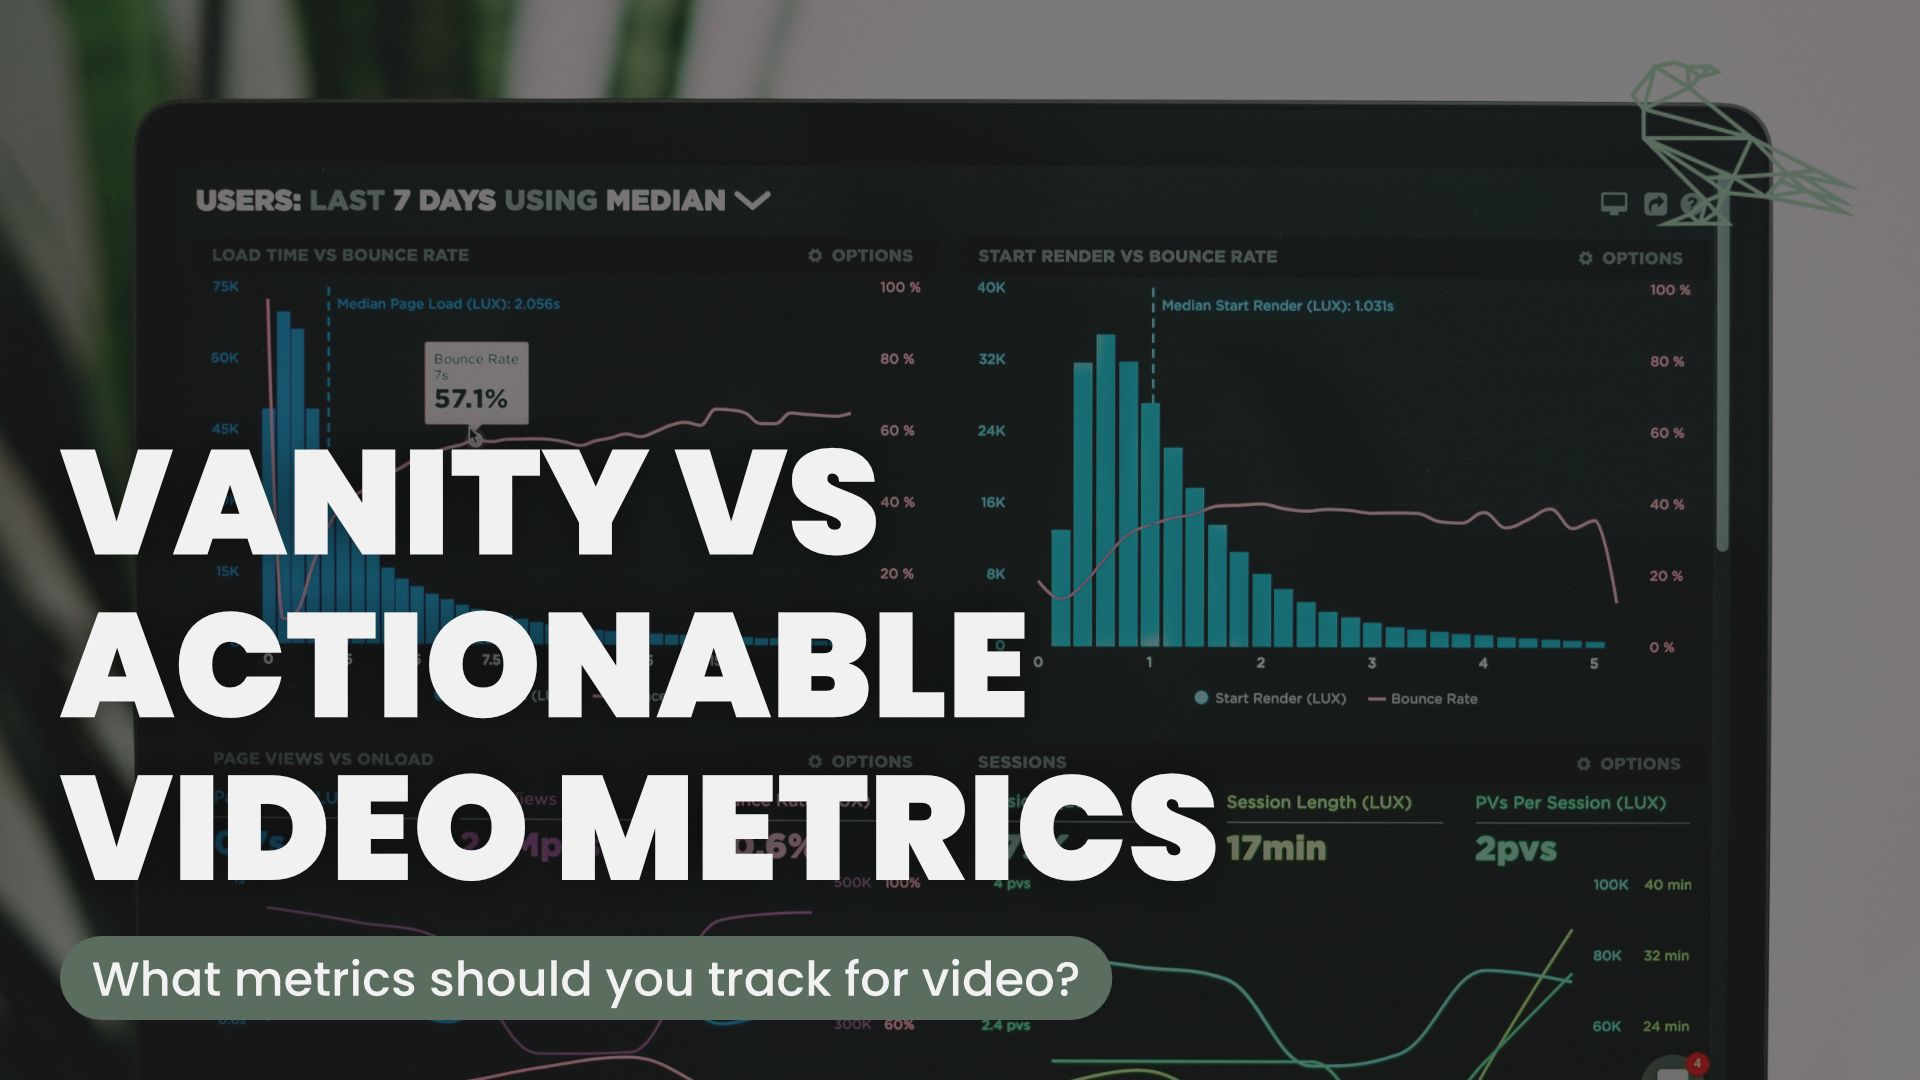 Tracking The Performance Of Videos - Vanity vs Actionable Metrics